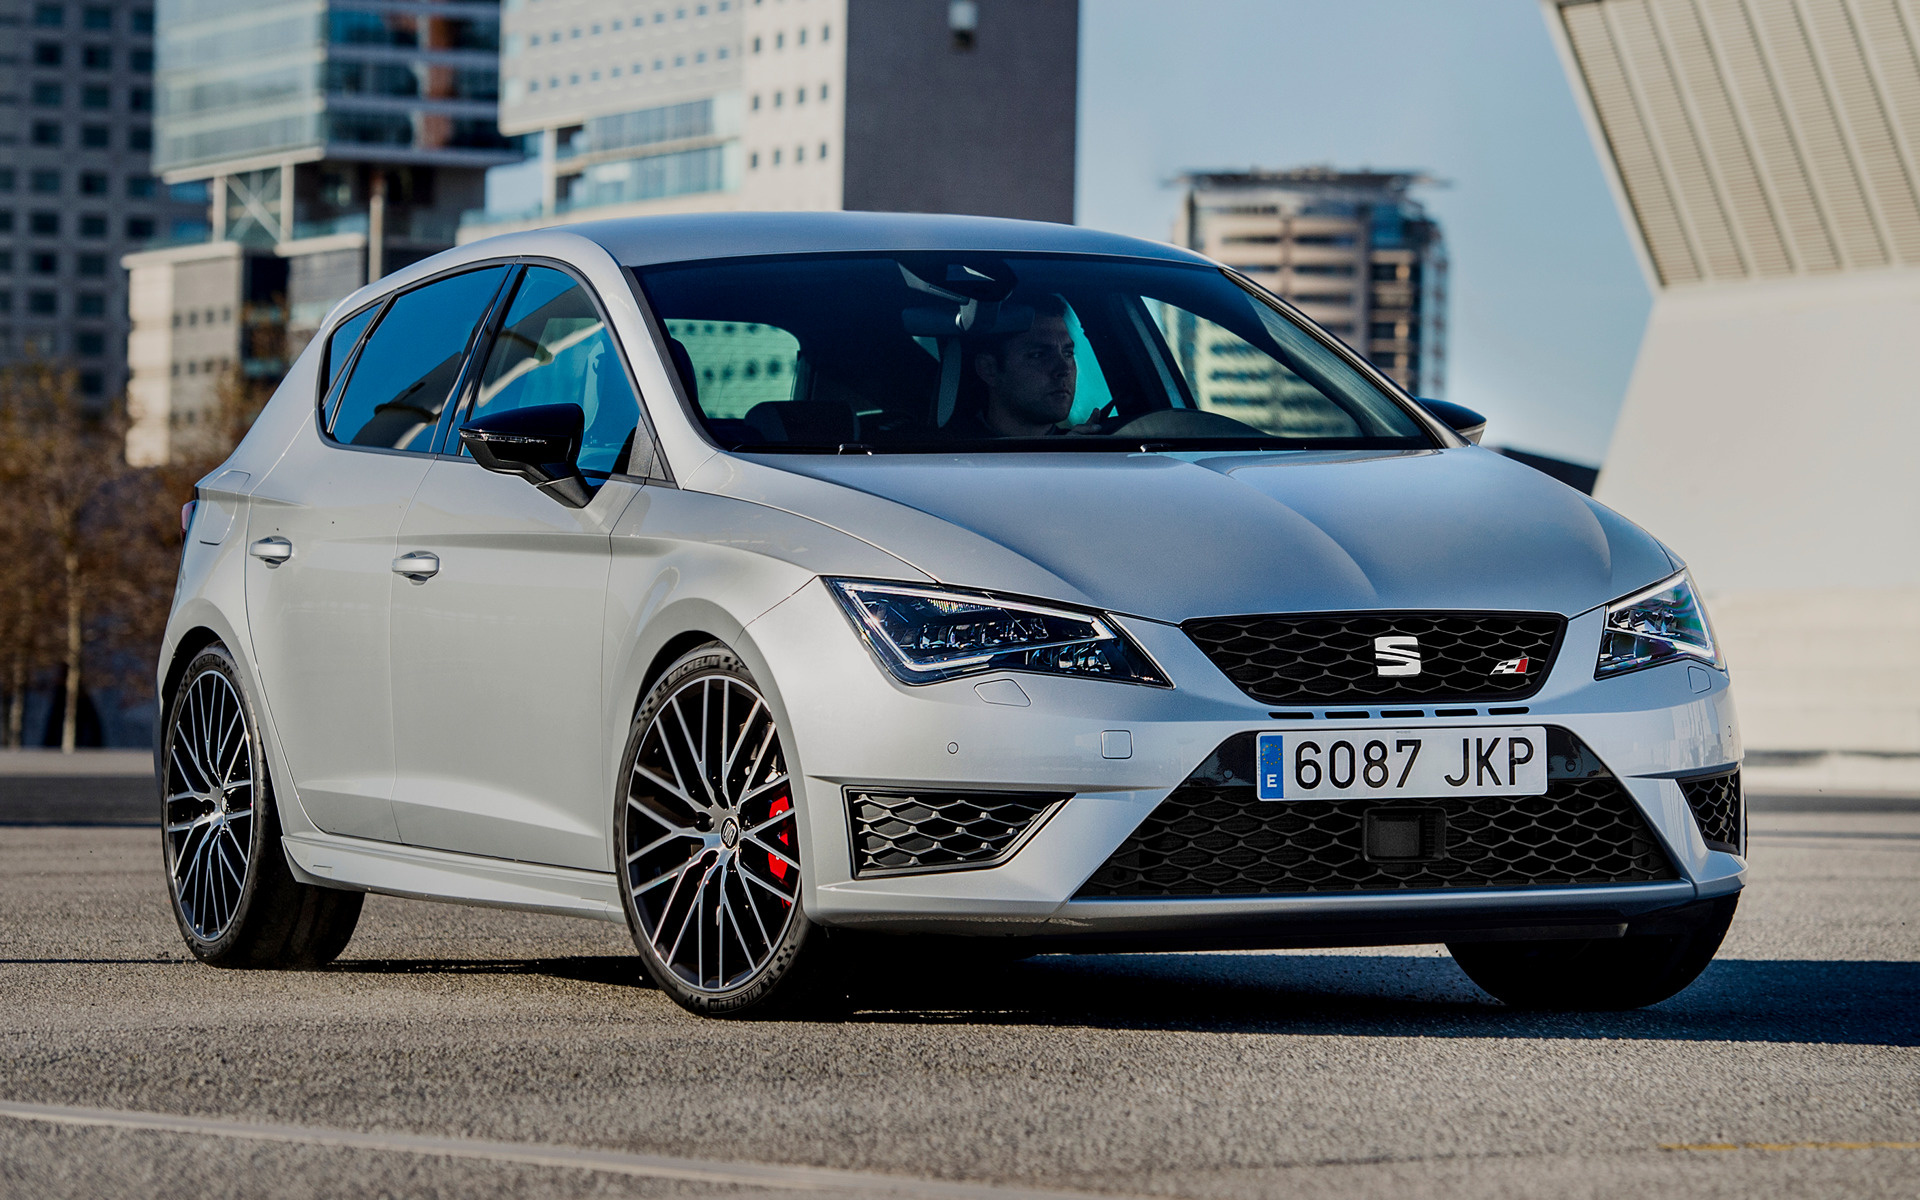 2015 Seat Leon Cupra 290 Wallpapers And Hd Images Car